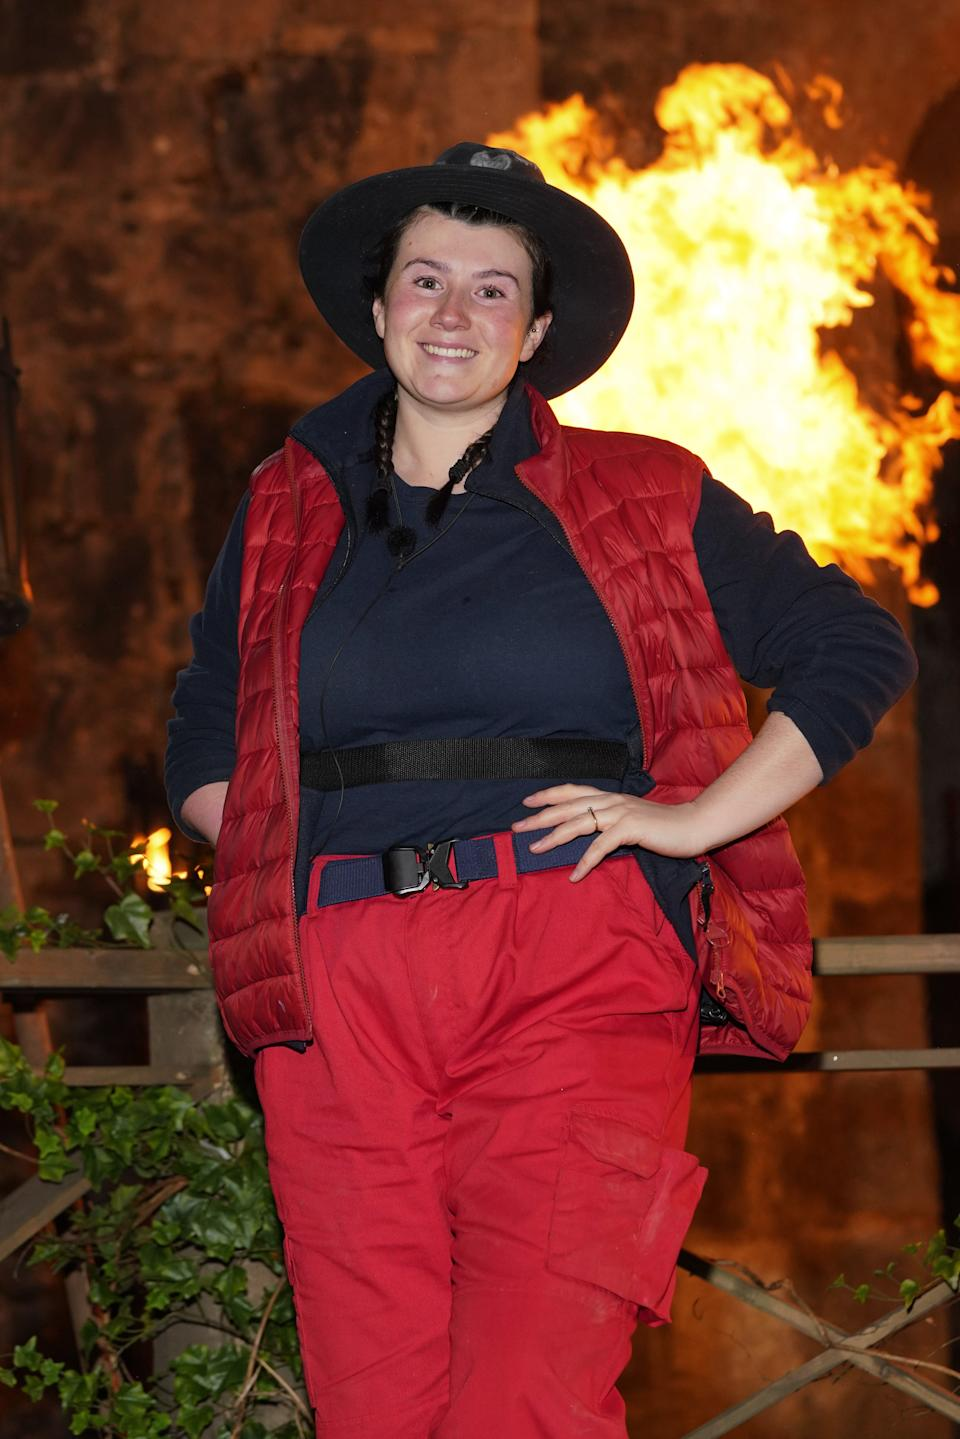 Hollie Arnold poses outside the I'm A Celebrity castle (Photo: Kieron McCarron/ITV/Shutterstock)